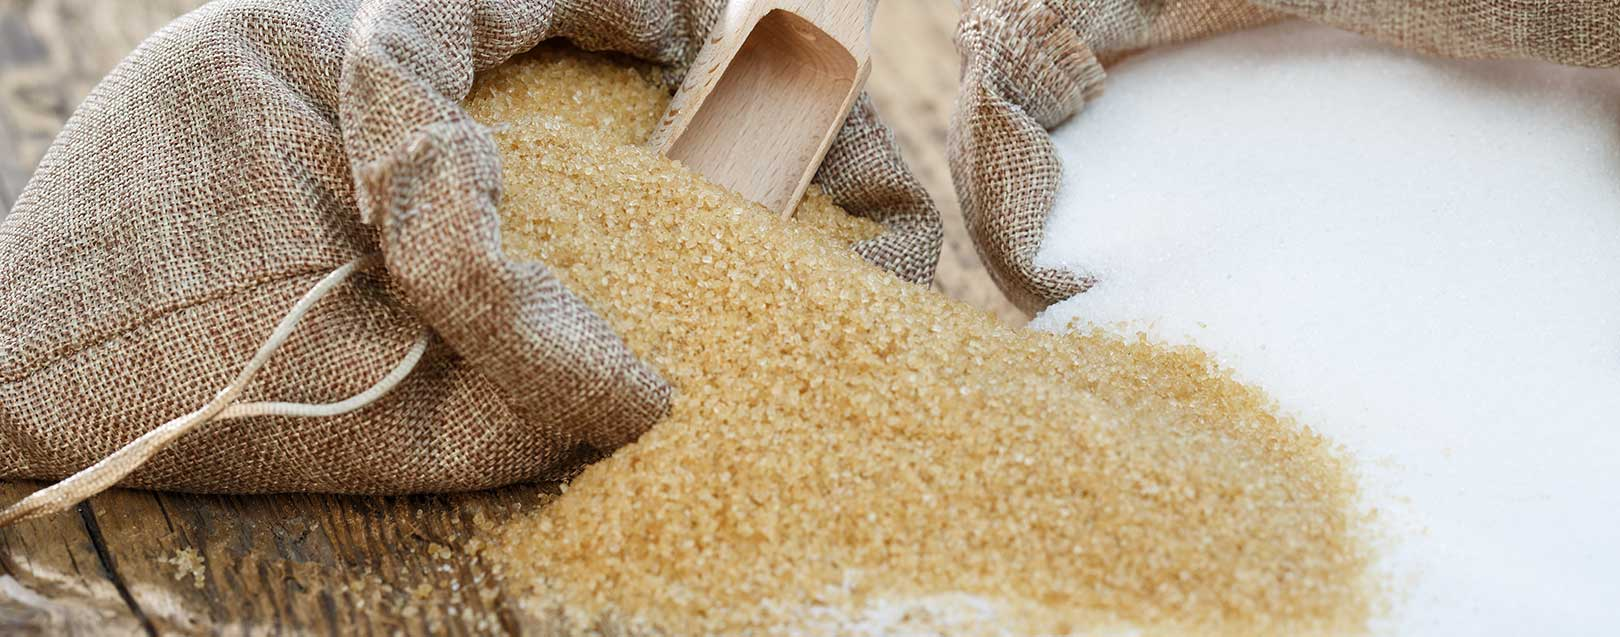 Govt hikes import duty on sugar to 50%